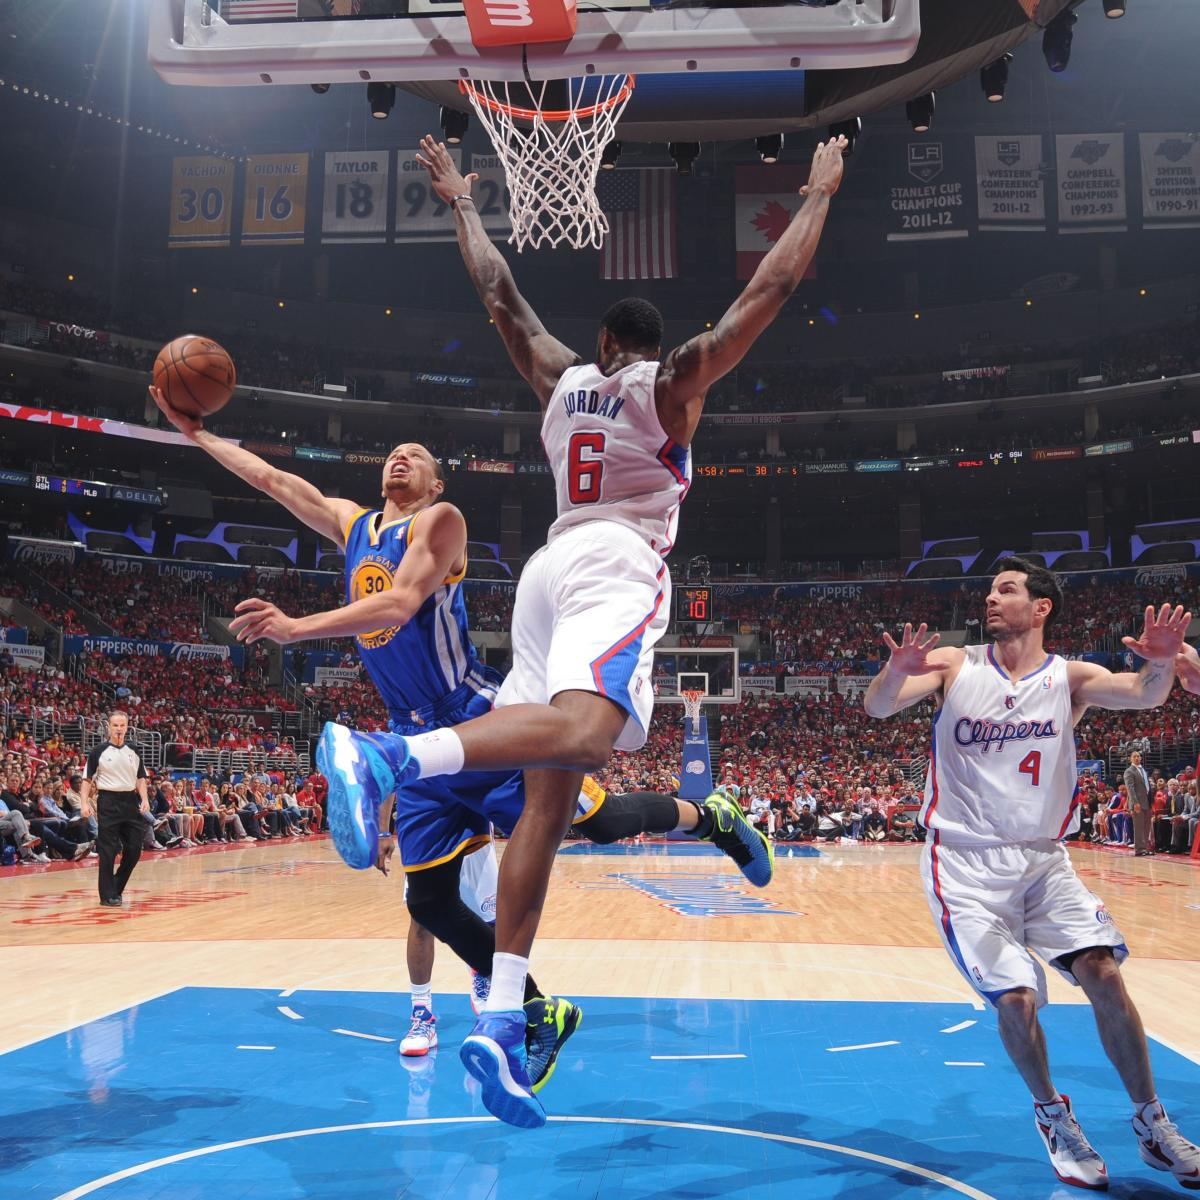 Warriors Vs Nets Full Game Highlights: Warriors Vs. Clippers Game 1: Live Score, Highlights And